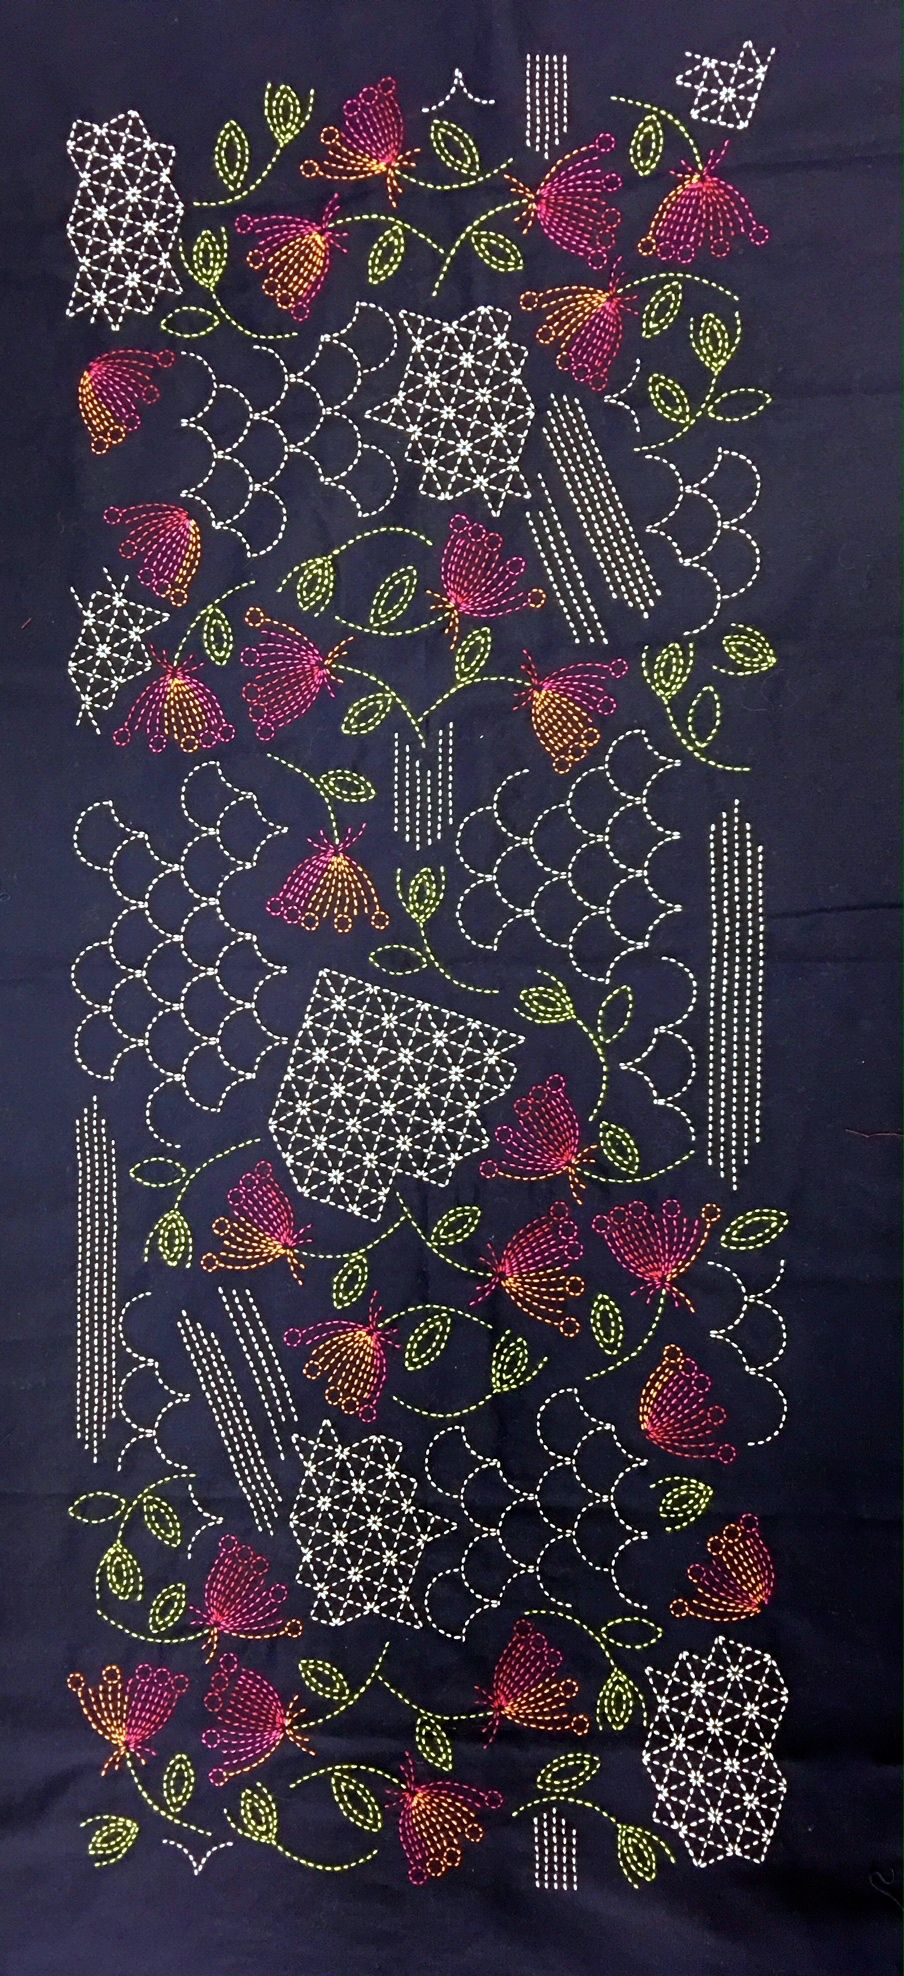 Sashiko Shell Panel Pre Printed For Ease Of Stitching